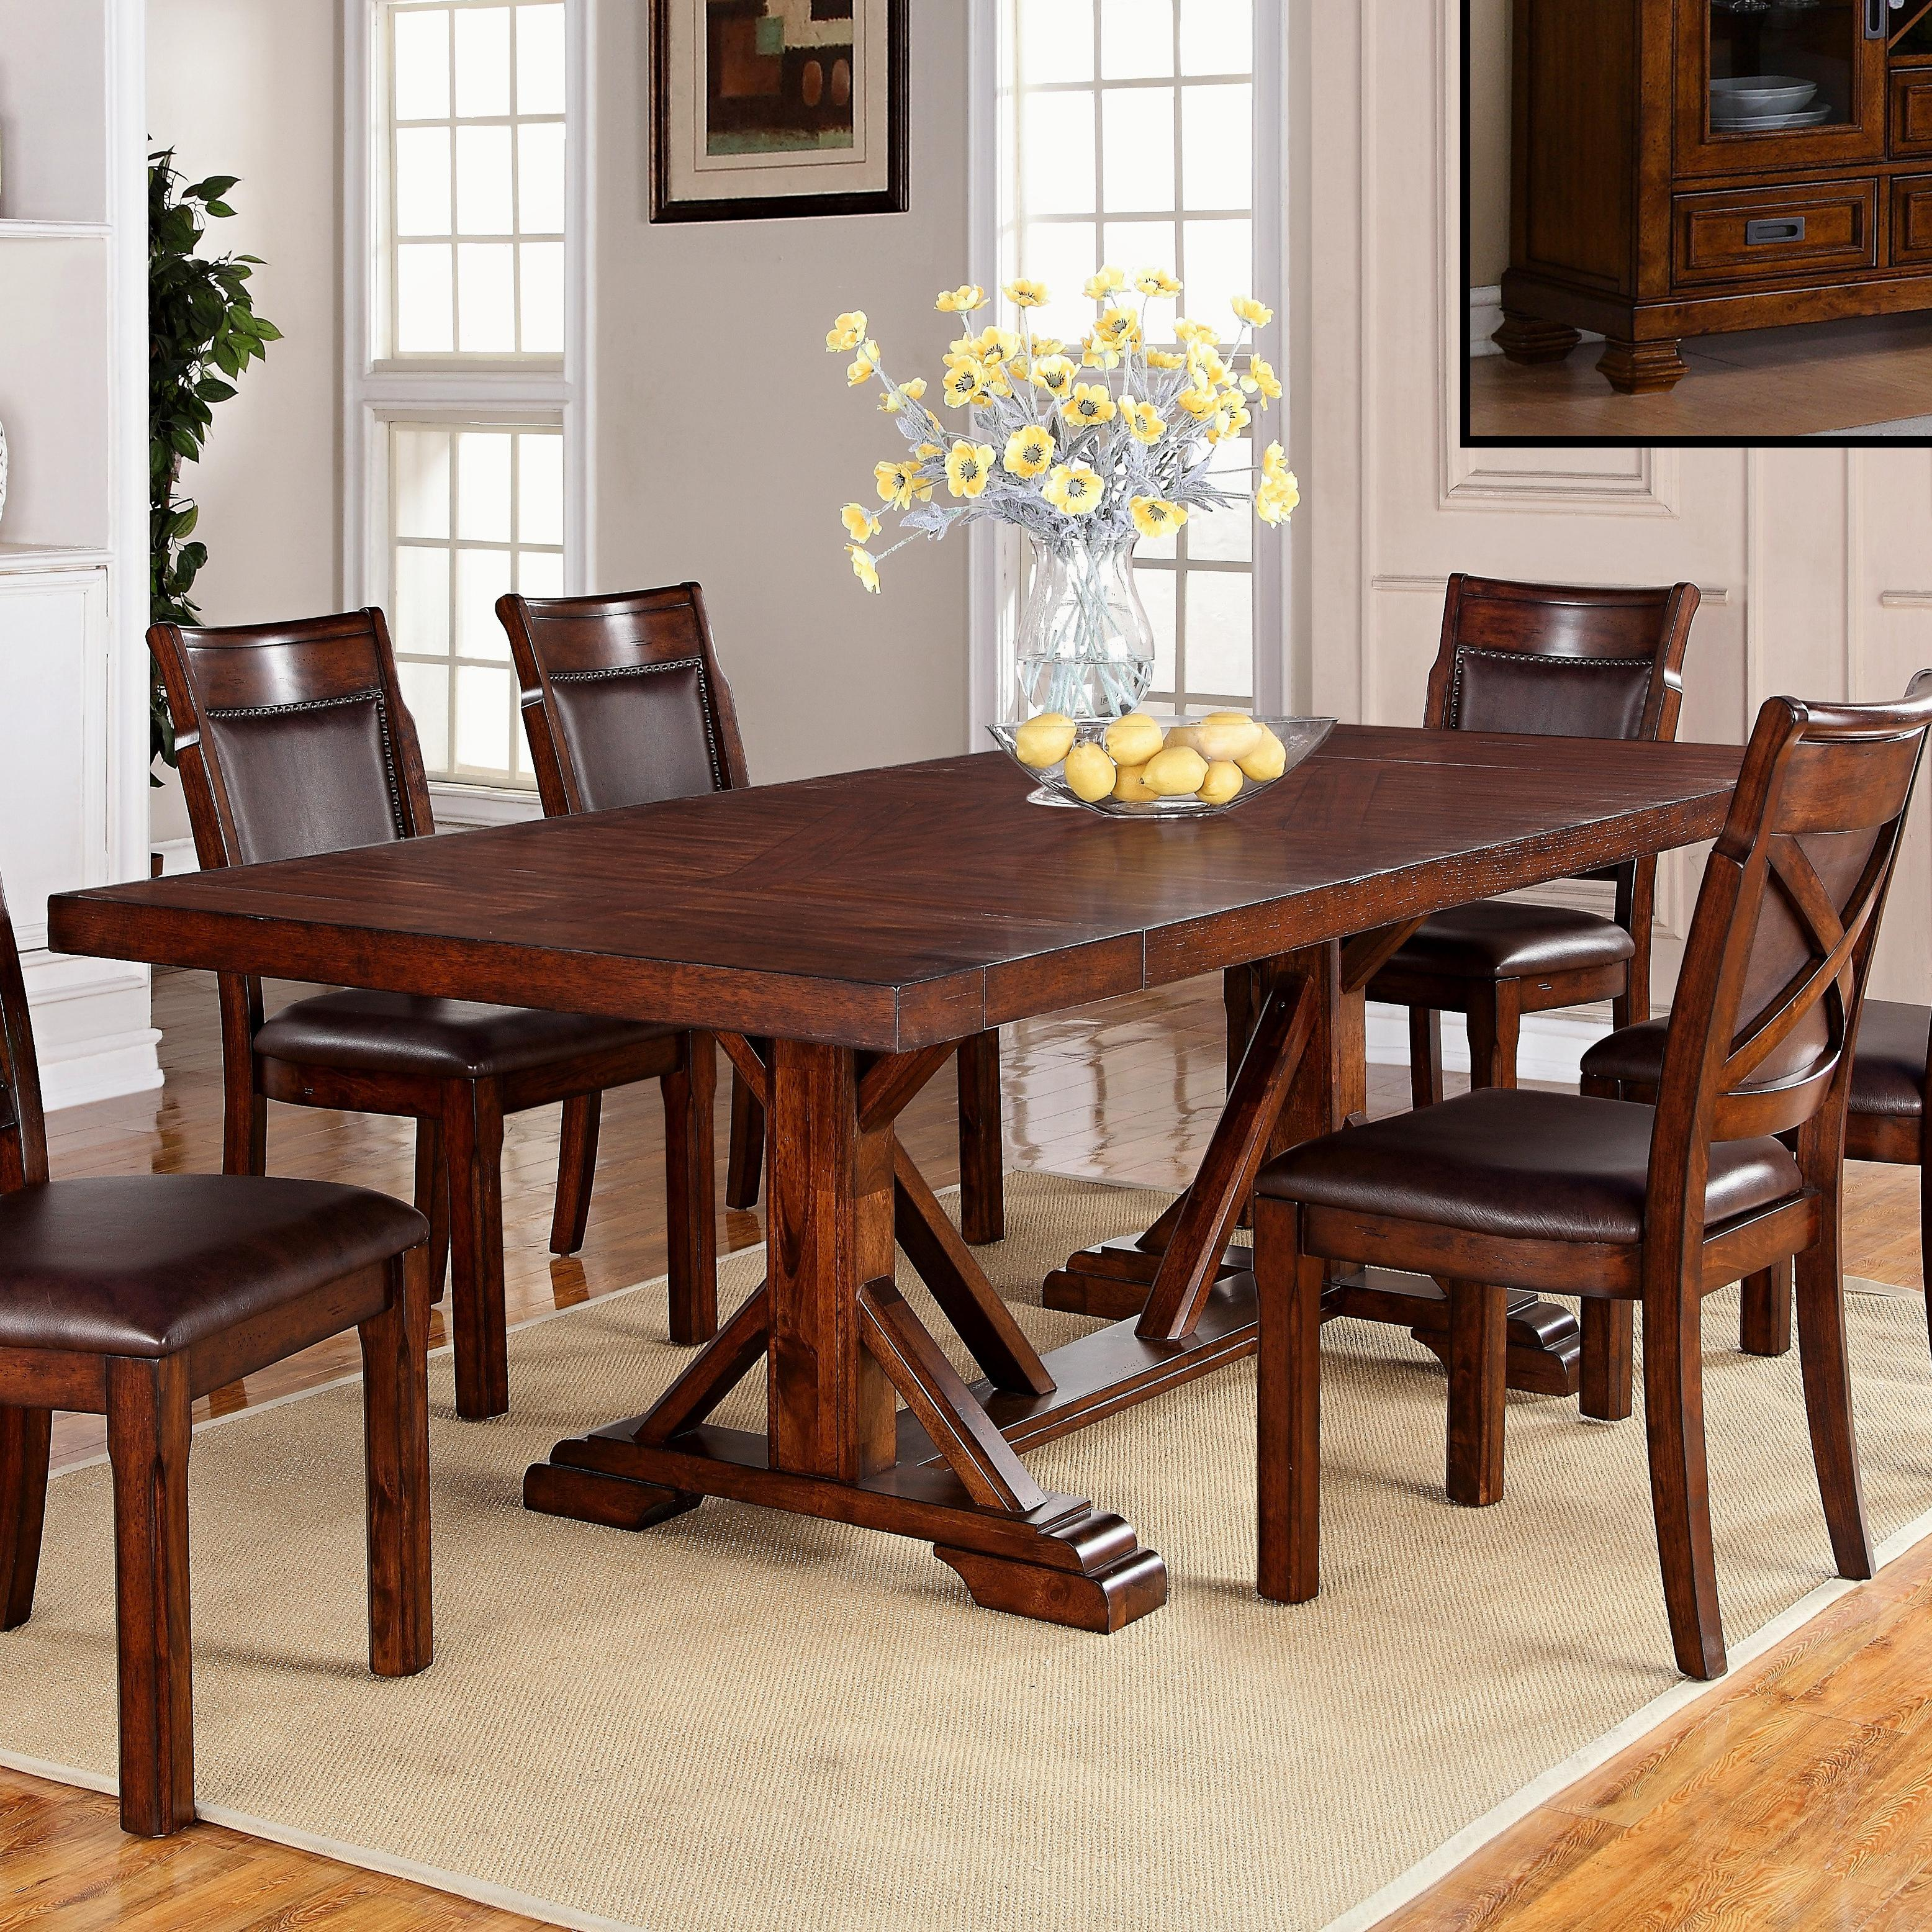 holland house adirondack trestle dining table with two